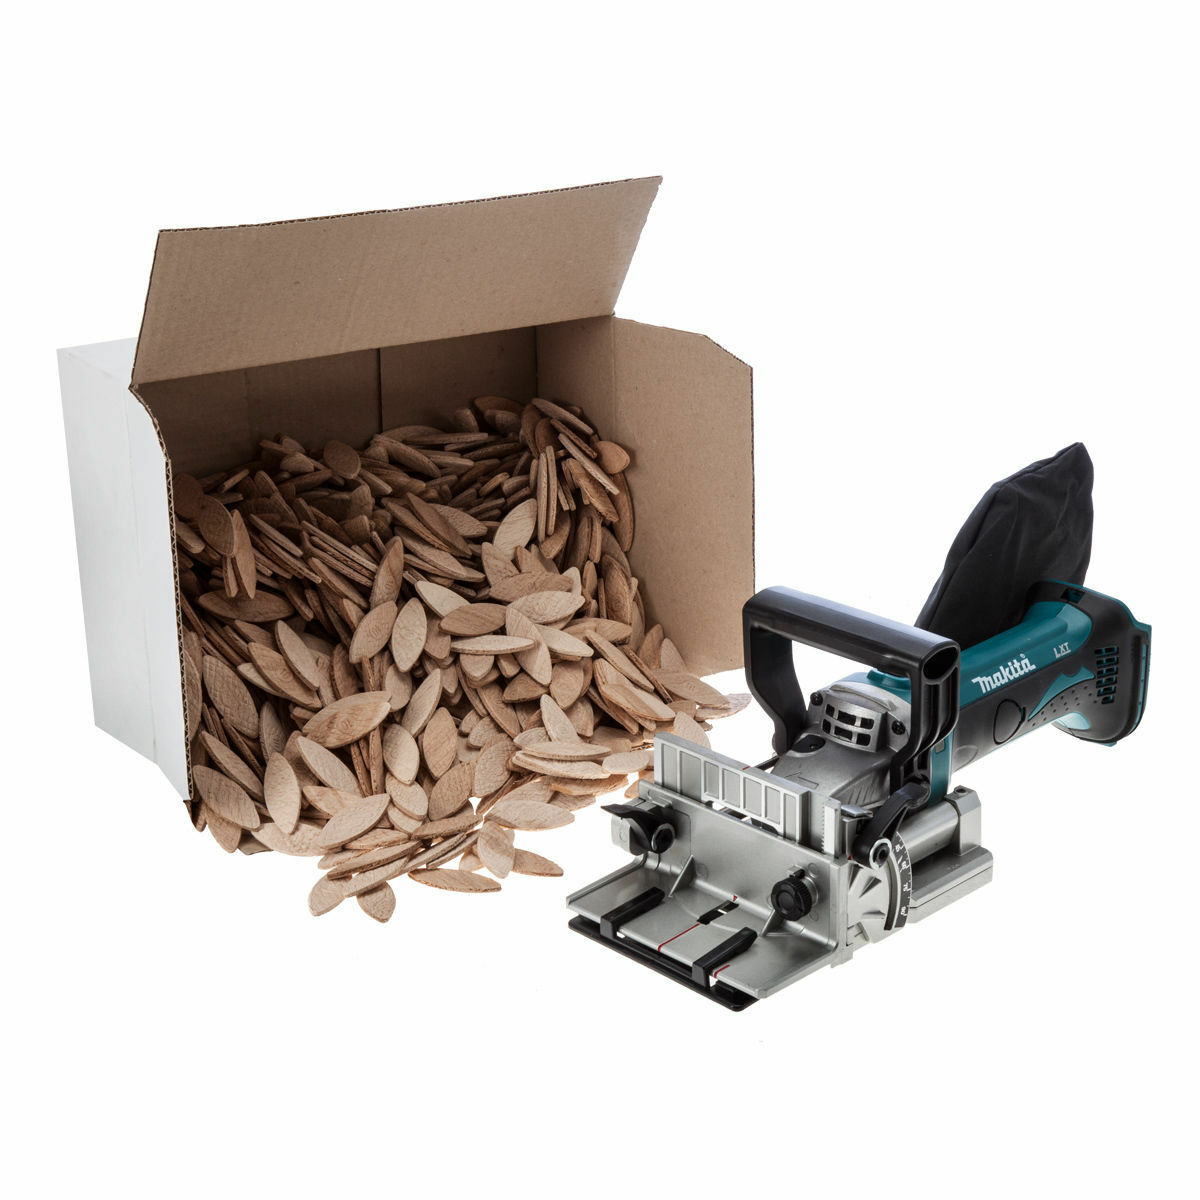 Makita DPJ180Z 18V LXT Biscuit Jointer DPJ180 (replaces BPJ180) + 1000 Dowels